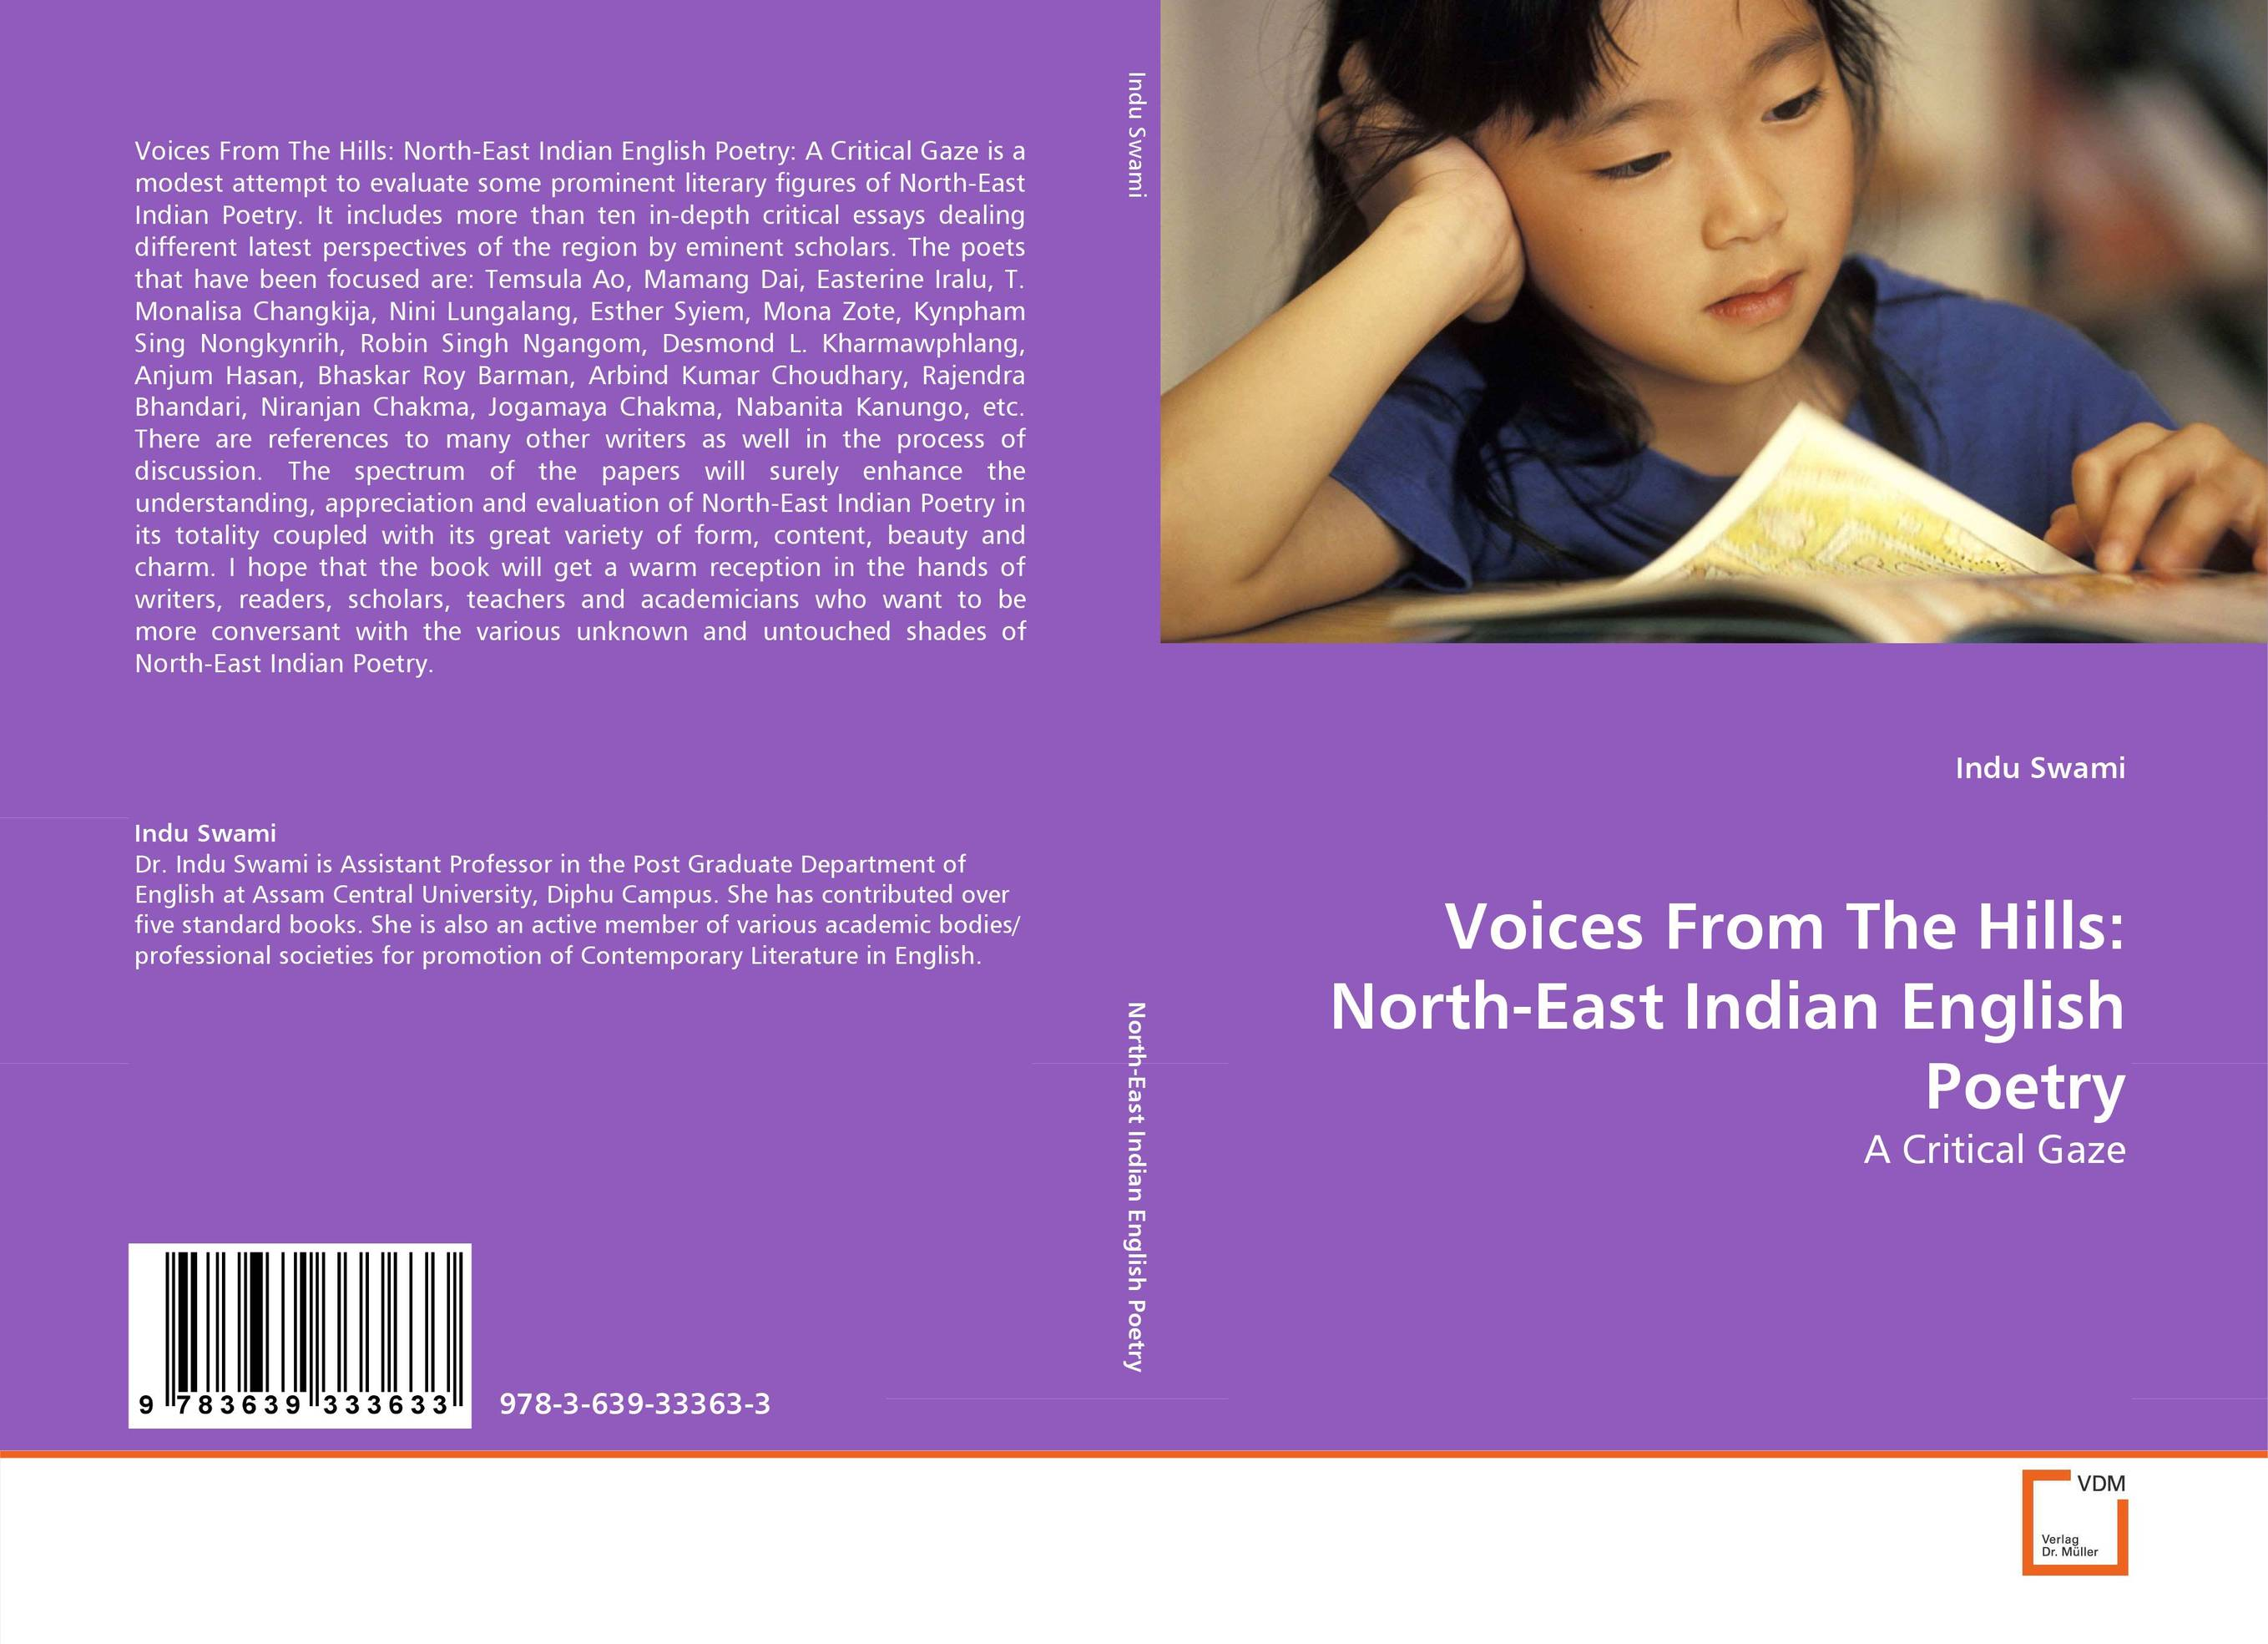 Voices From The Hills: North-East Indian English Poetry аксессуары in akustik cd great voices 0167501 1